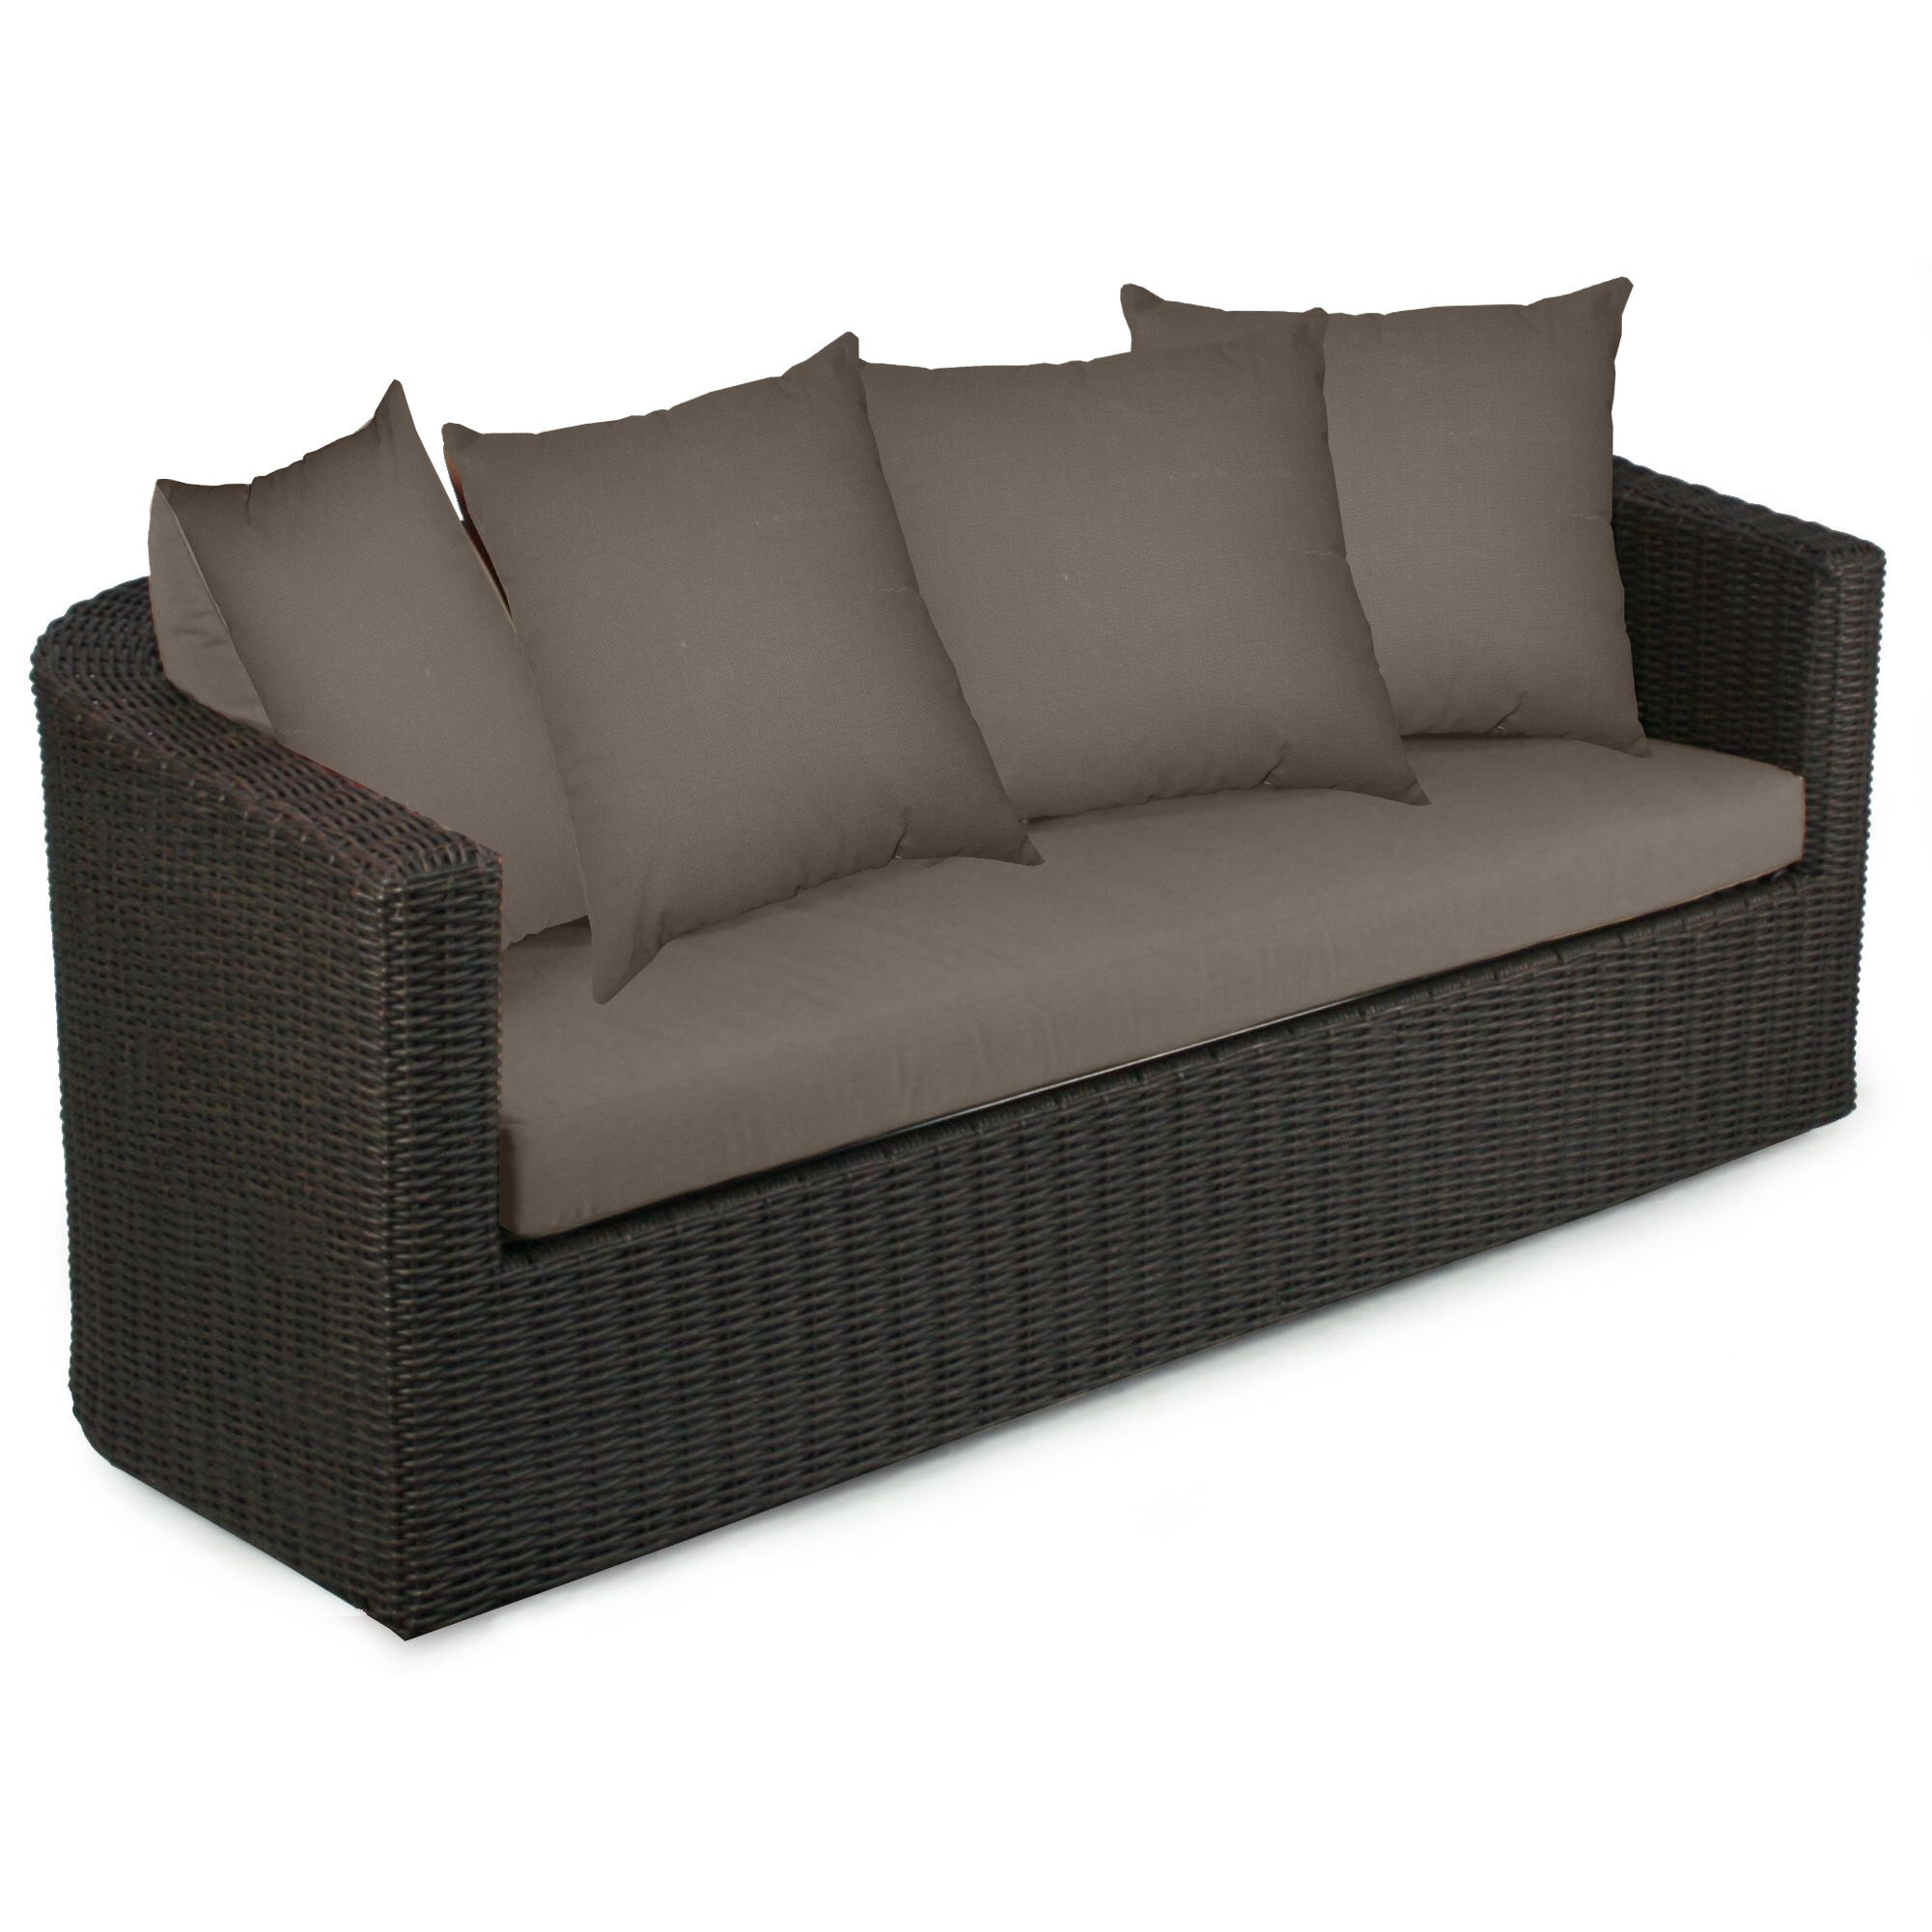 Palomar Sofa with Cushions Fabric: Coffee